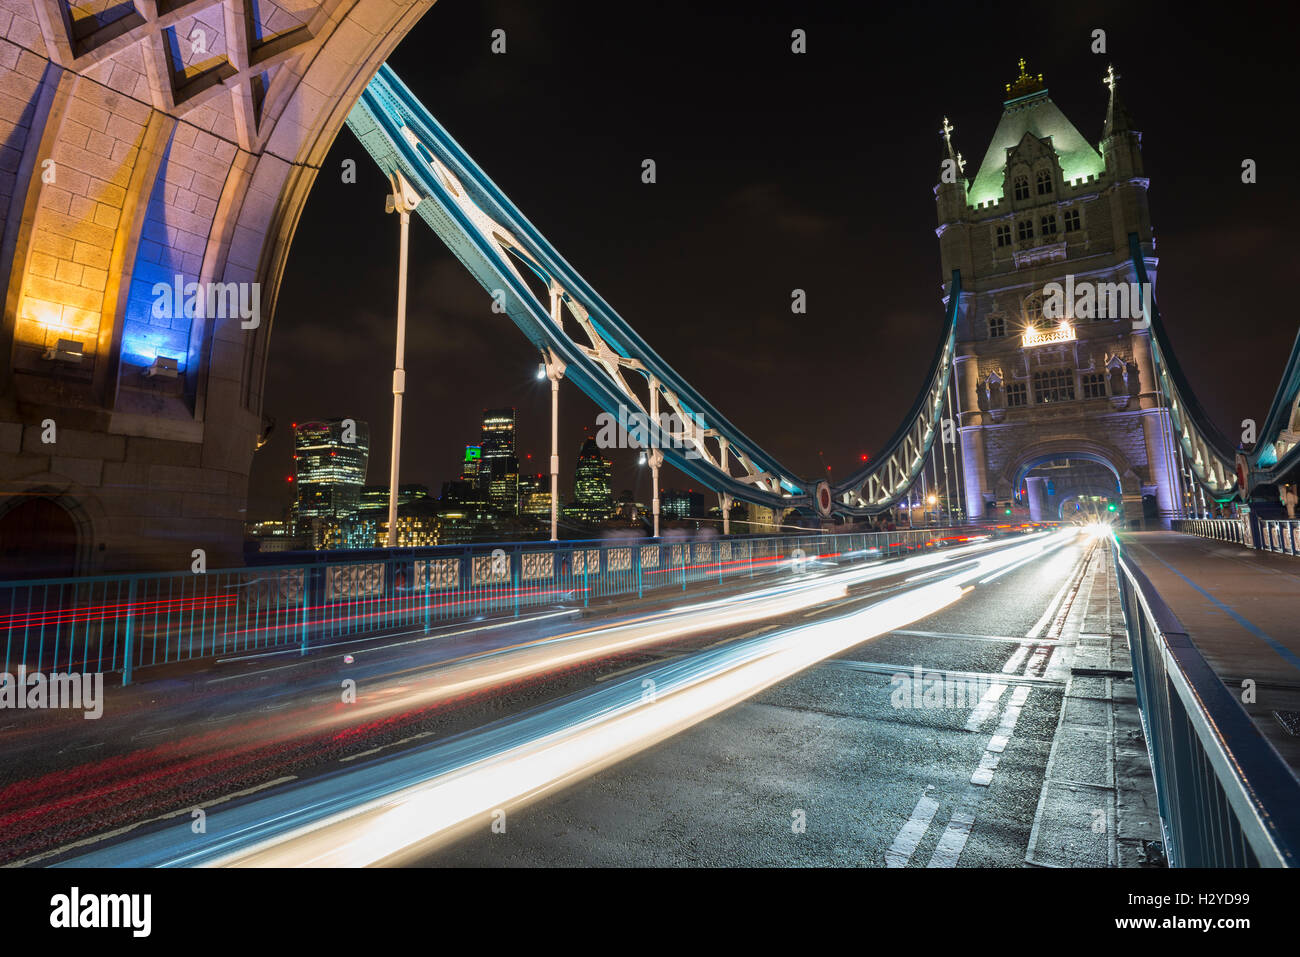 Skyline of the City of London behind the gleam of traffic on the Tower Bridge deck over the river Thames at night, - Stock Image